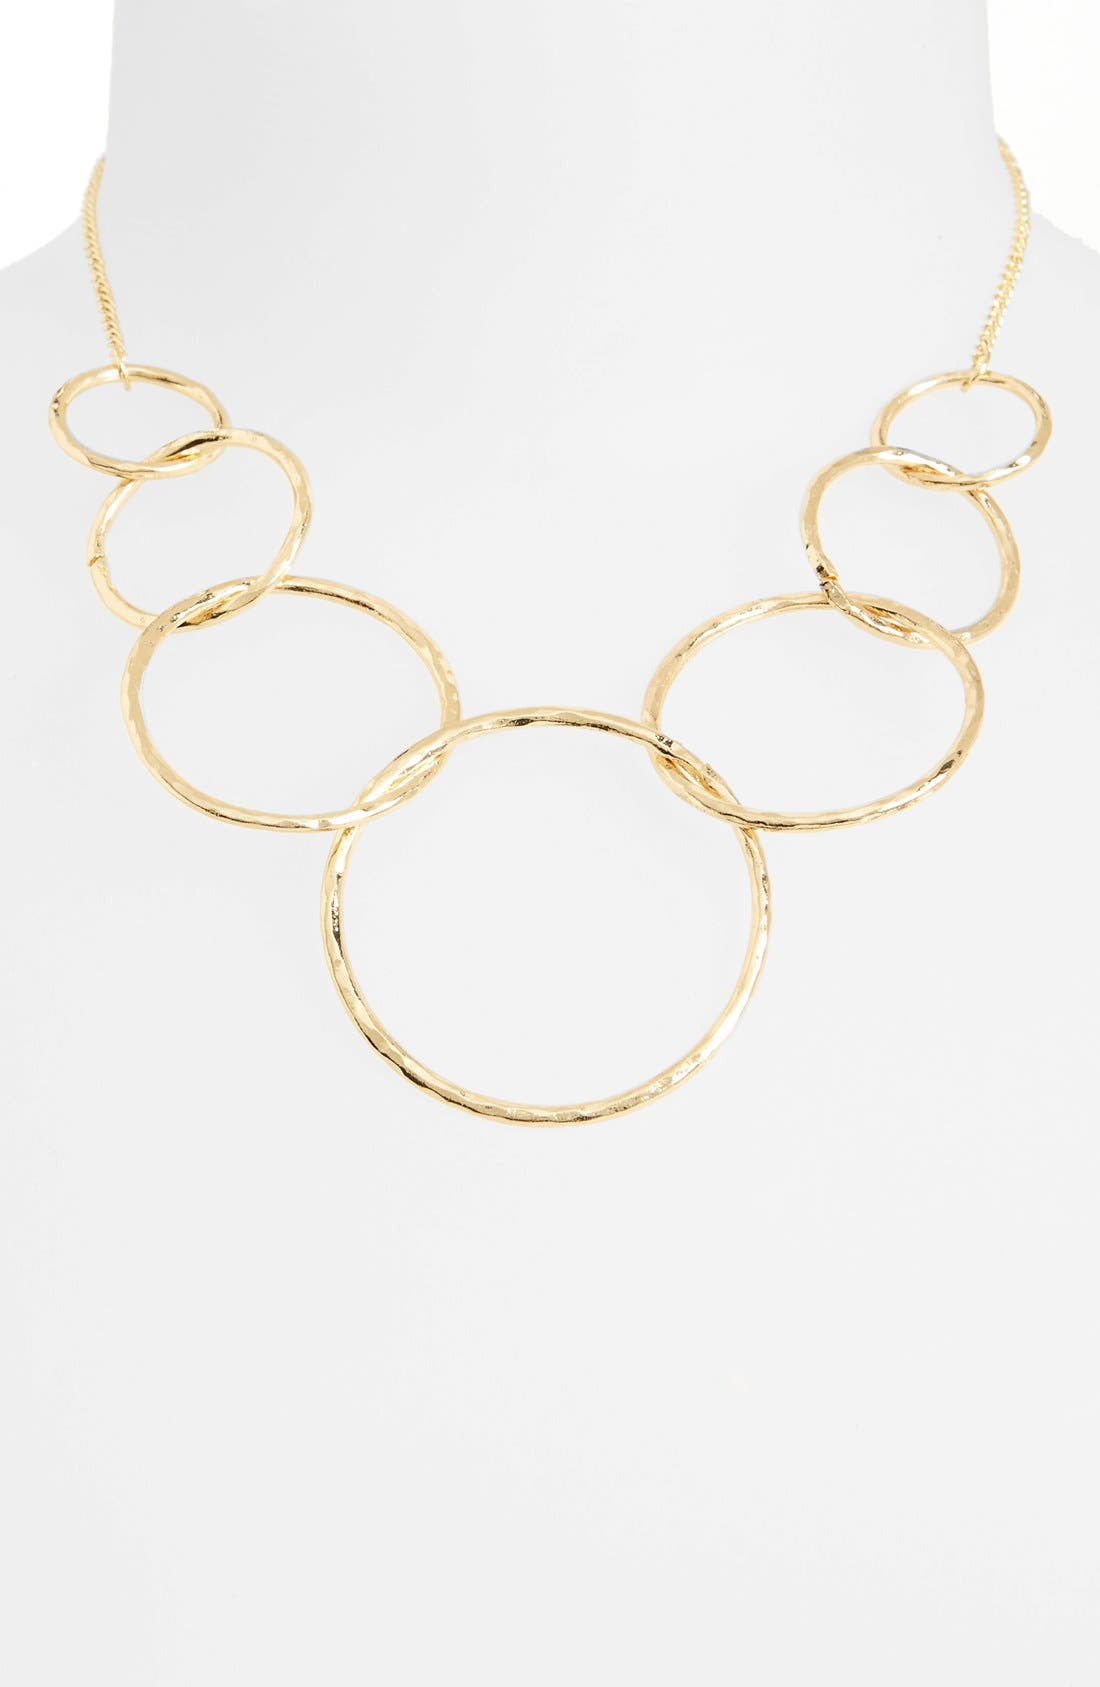 Alternate Image 1 Selected - Panacea Circle Link Necklace